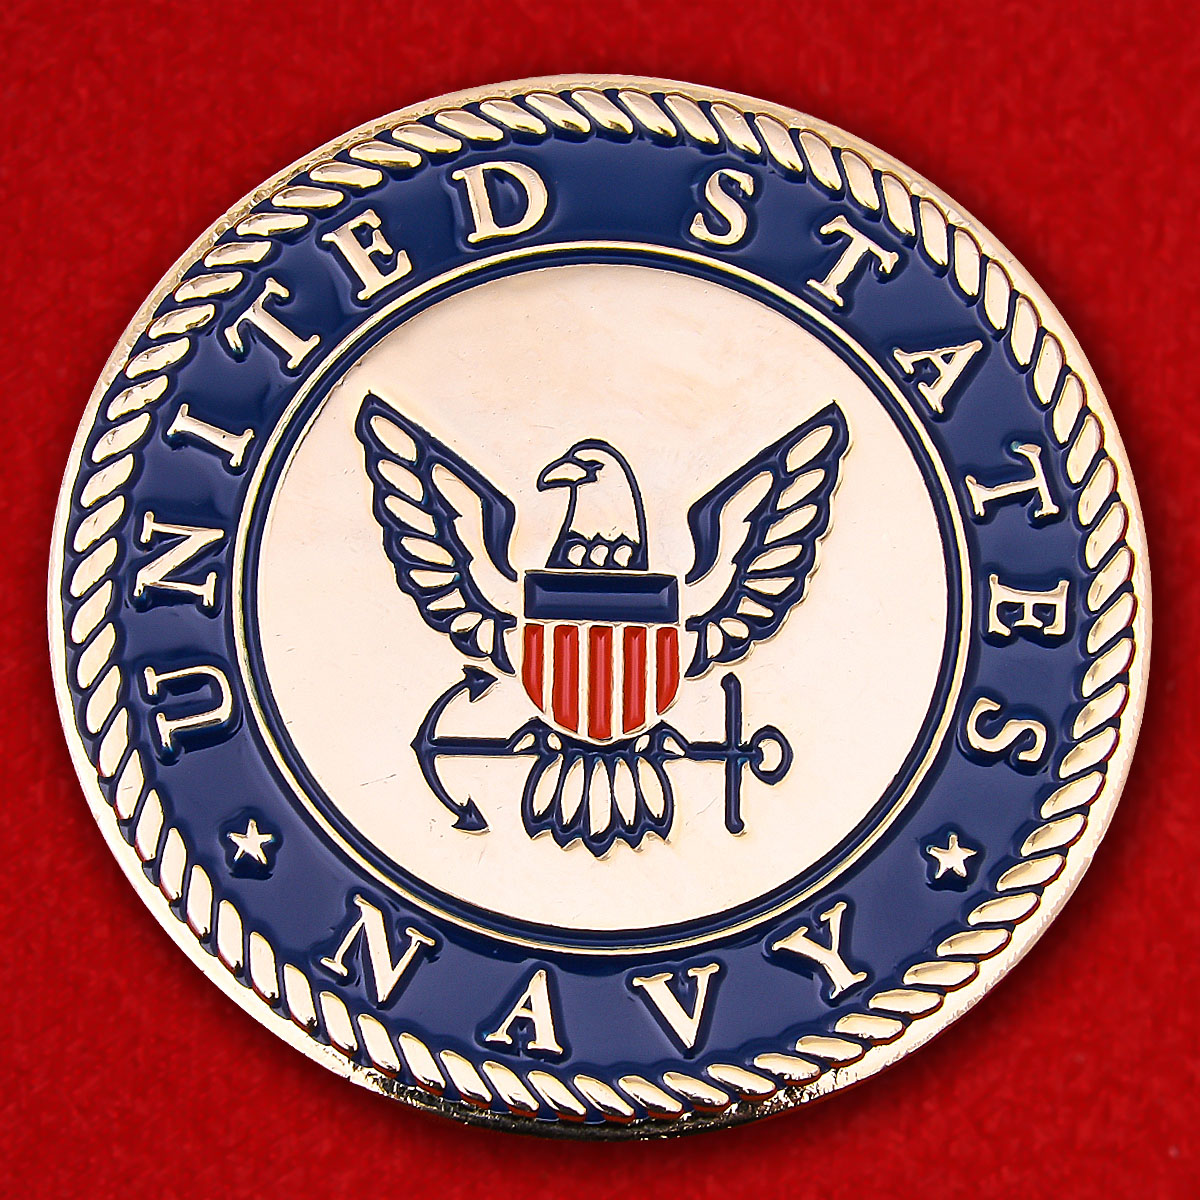 US Navy Operation Enduring Freedom, Afghanistan Challenge Coin